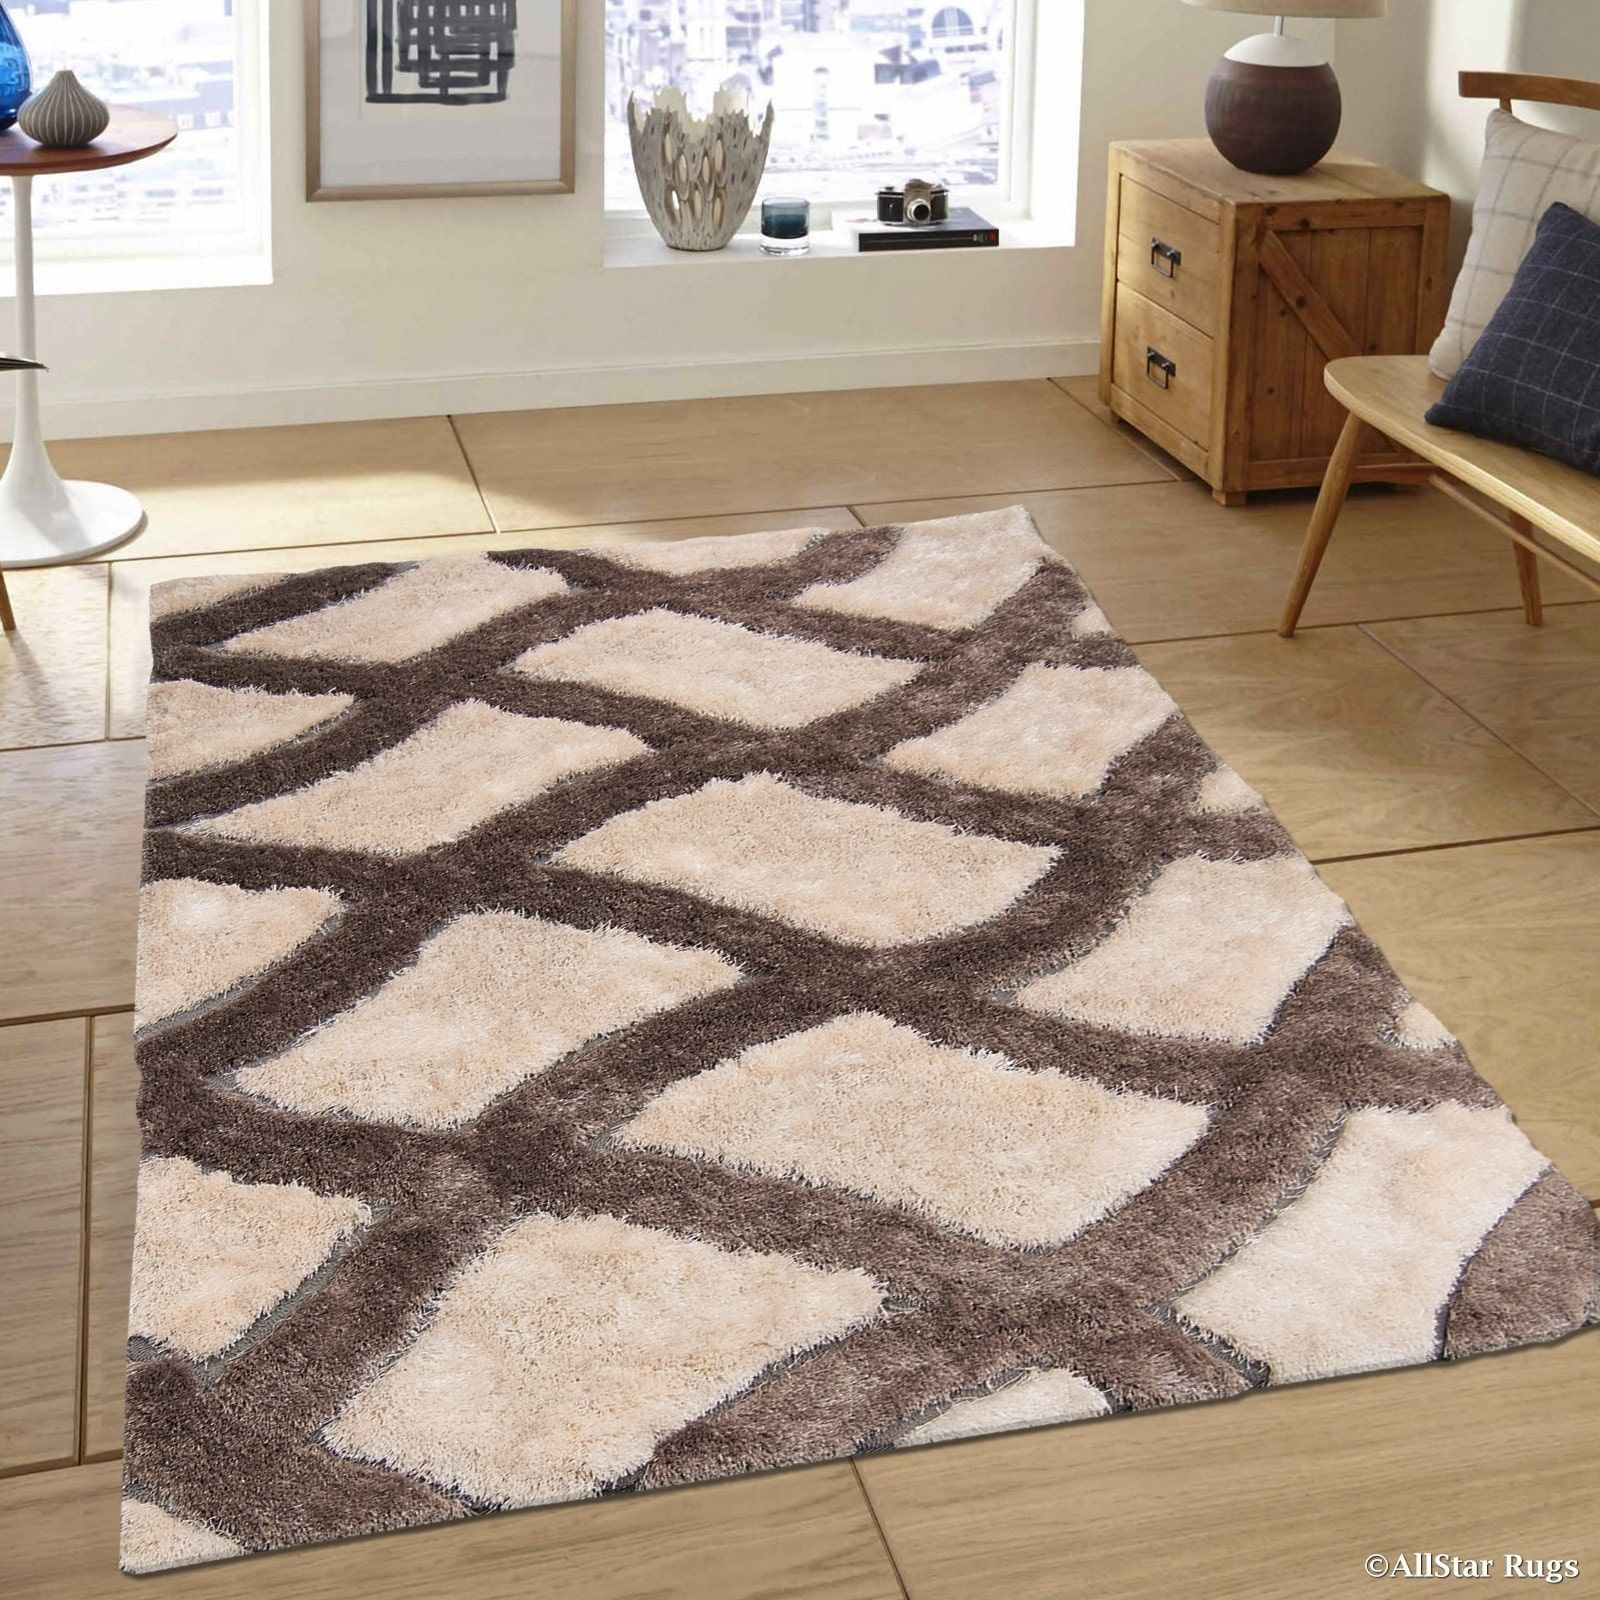 rug for living room size%0A Brown Trellis Design Thick High Pile Rug